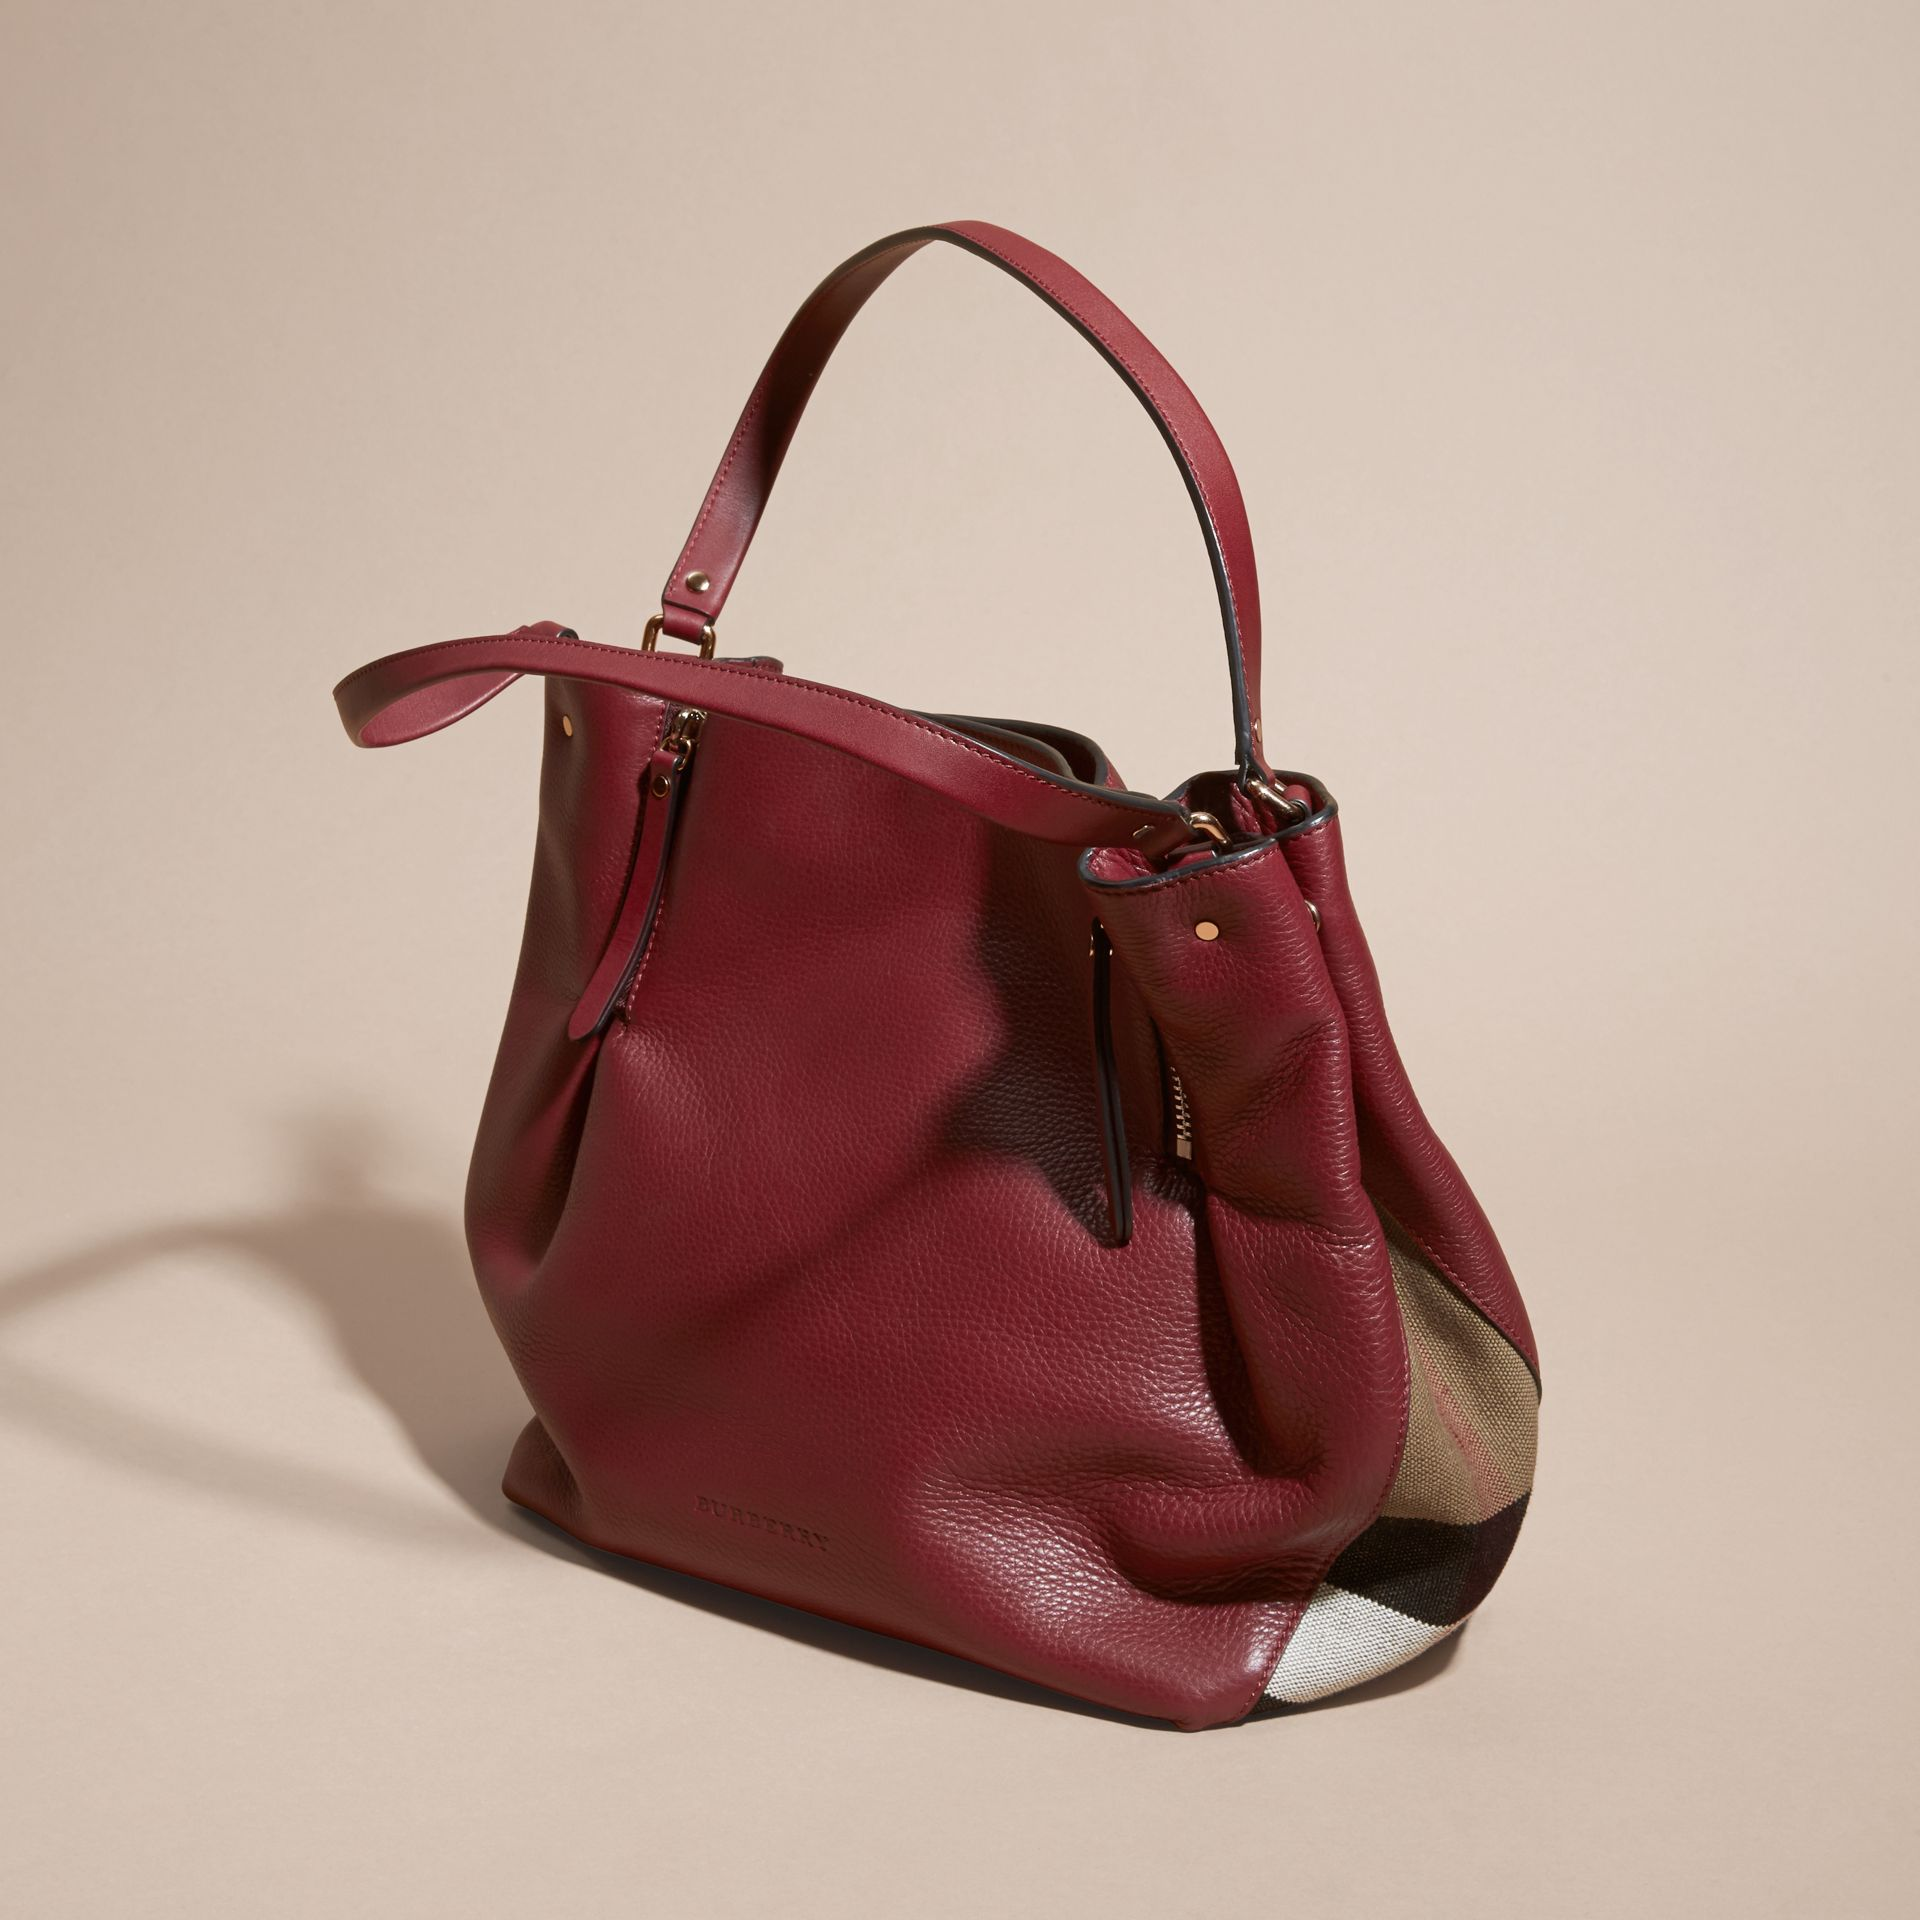 Rouge bourgogne Sac tote medium en cuir orné de touches check - photo de la galerie 7